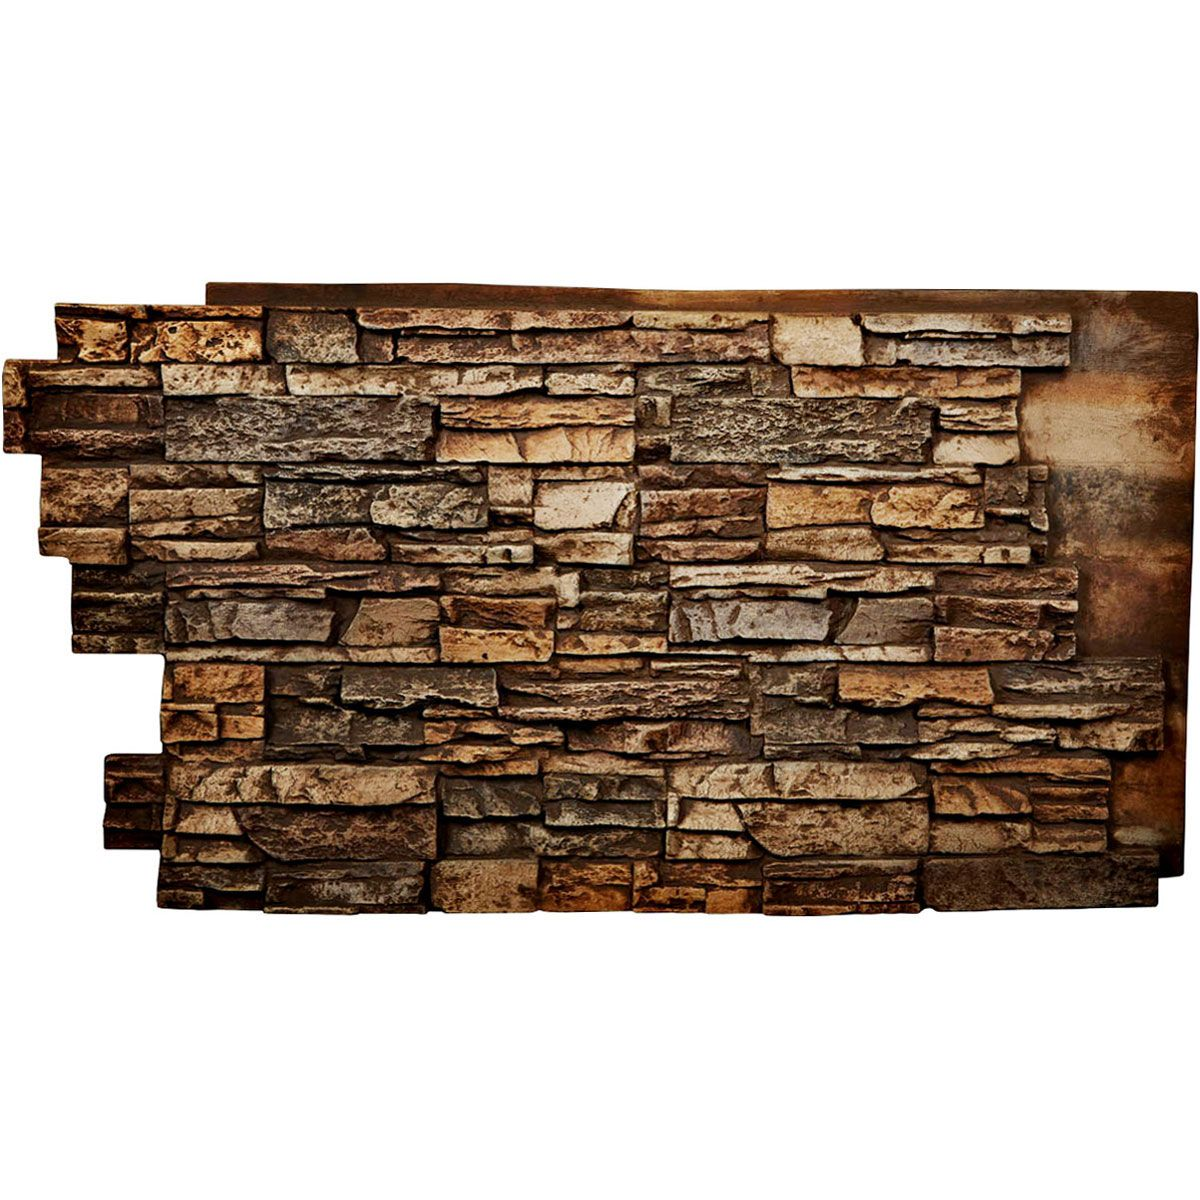 48 Inch W X 25 Inch H X 1 1 2 Inch D Stacked Endurathane Faux Stone Siding Panel In 2020 Stacked Stone Walls Faux Stone Siding Stone Wall Panels